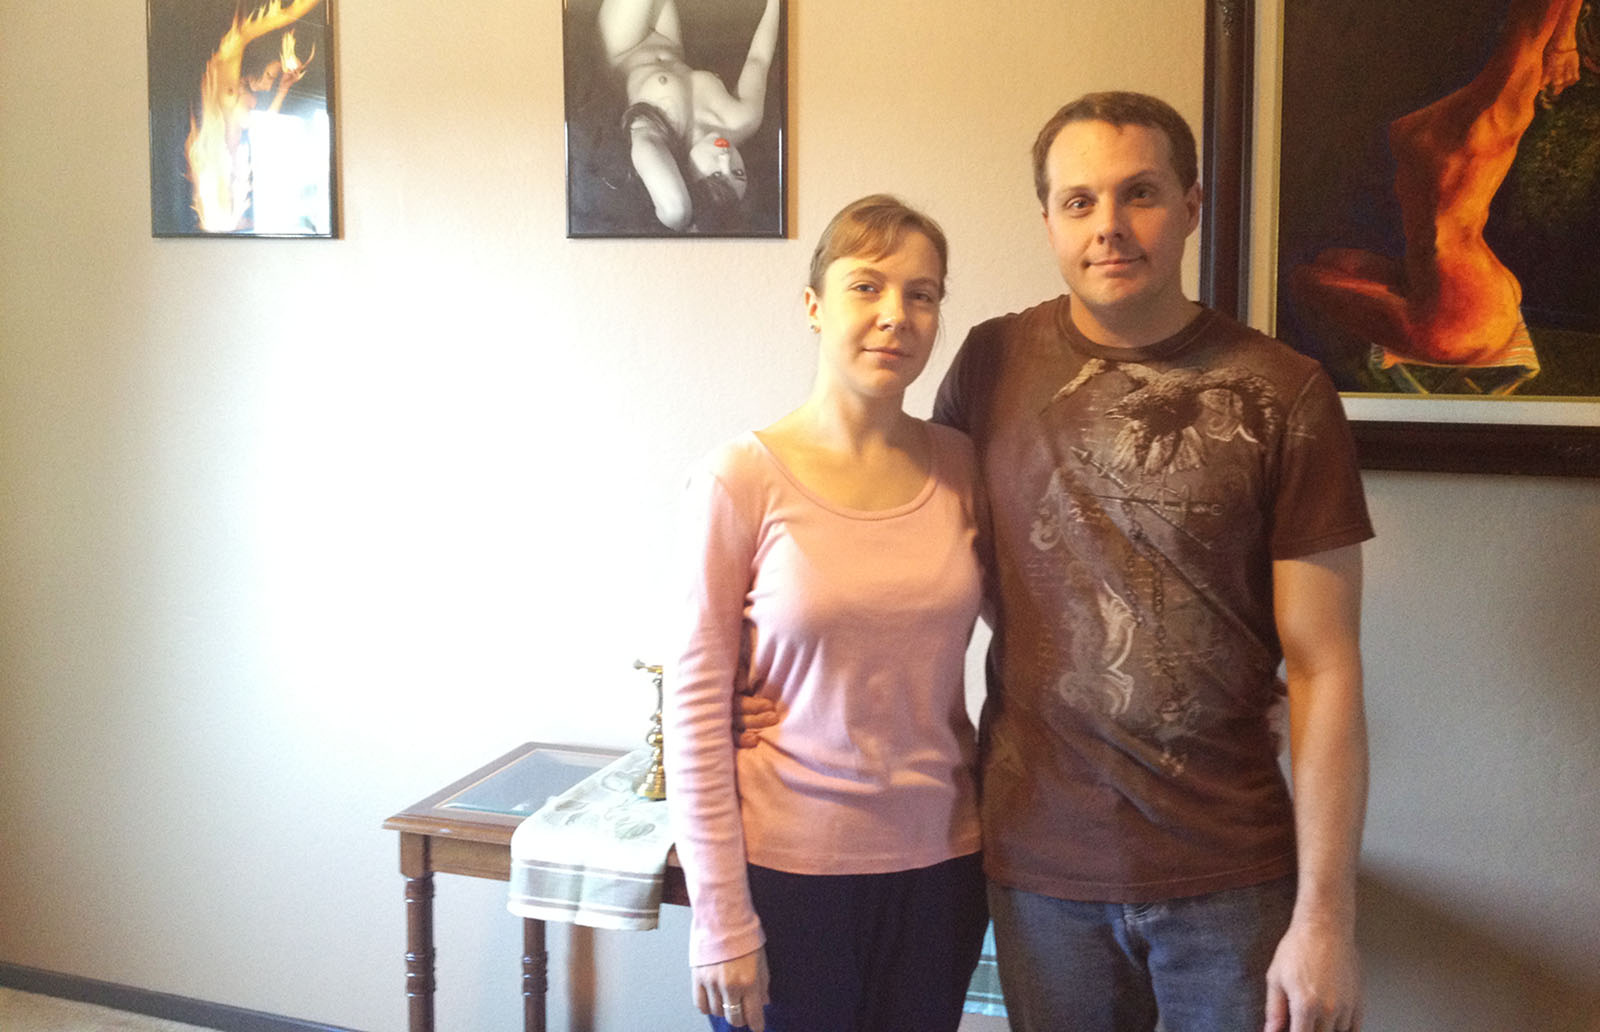 Gared Hansen and his Wife, Alena Koval, with their artwork.